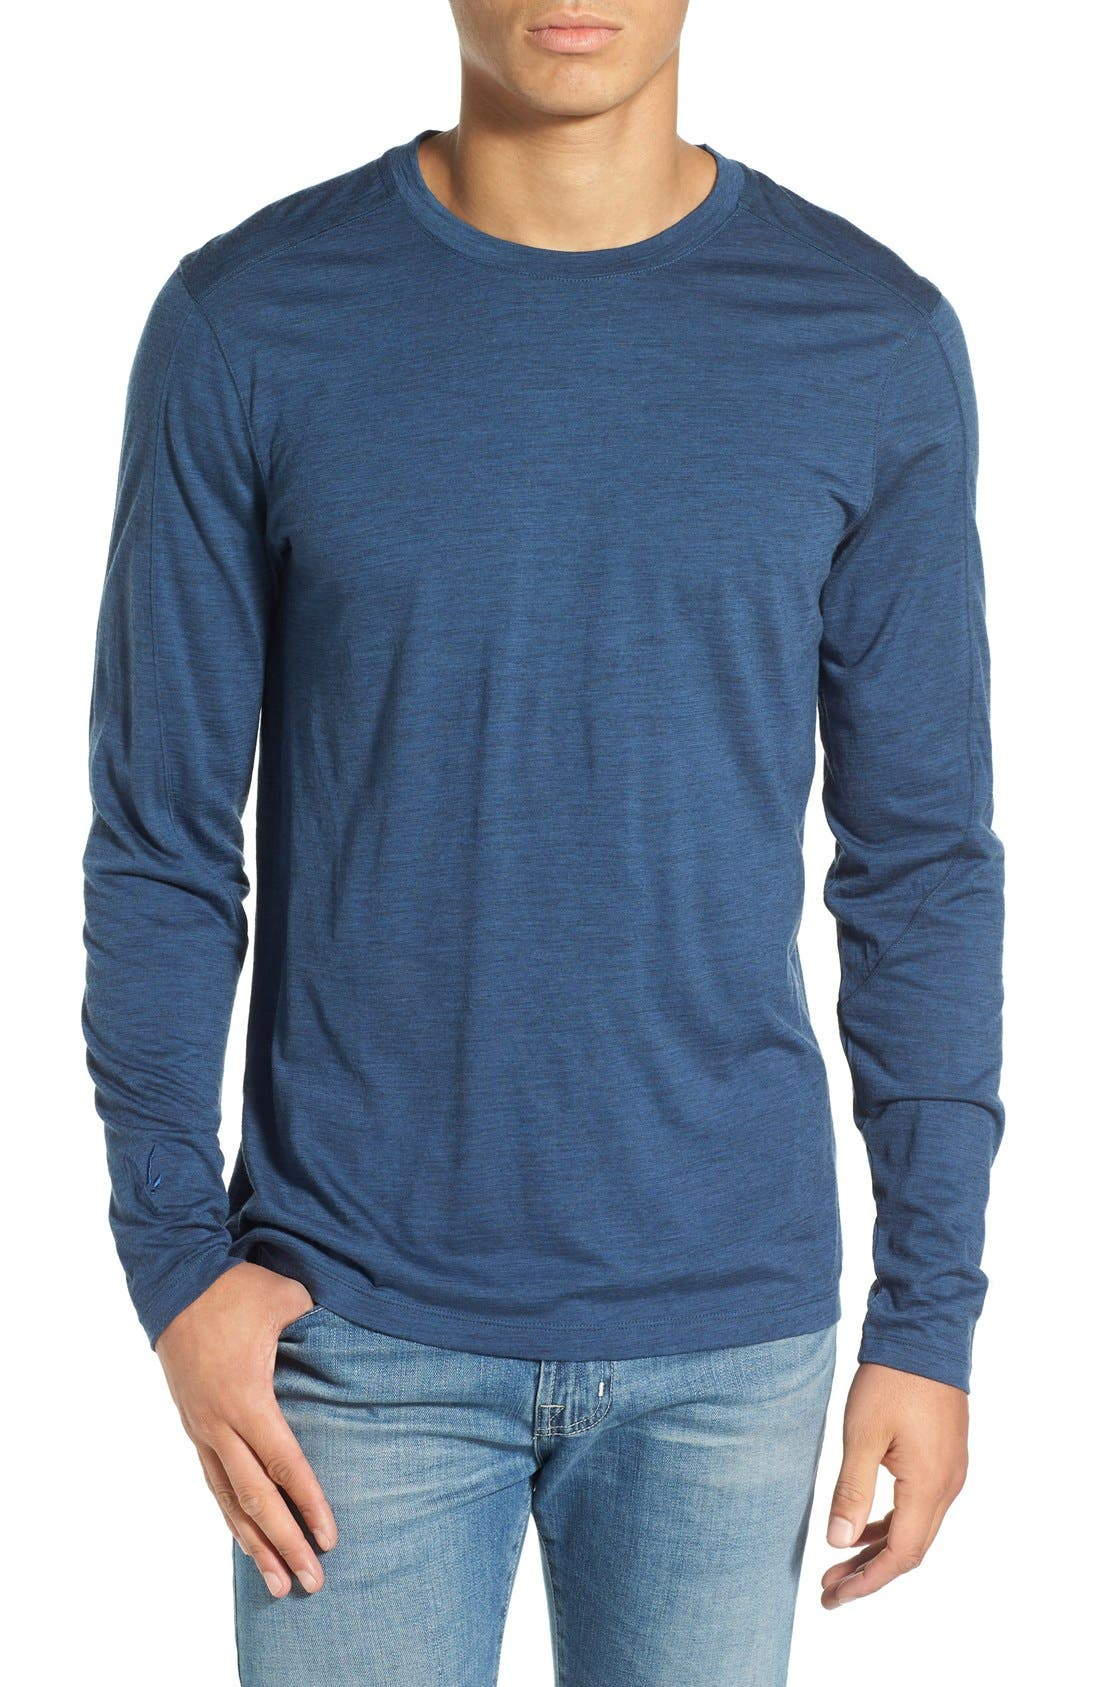 ibex 'OD' Merino Wool Long Sleeve Crewneck T-Shirt